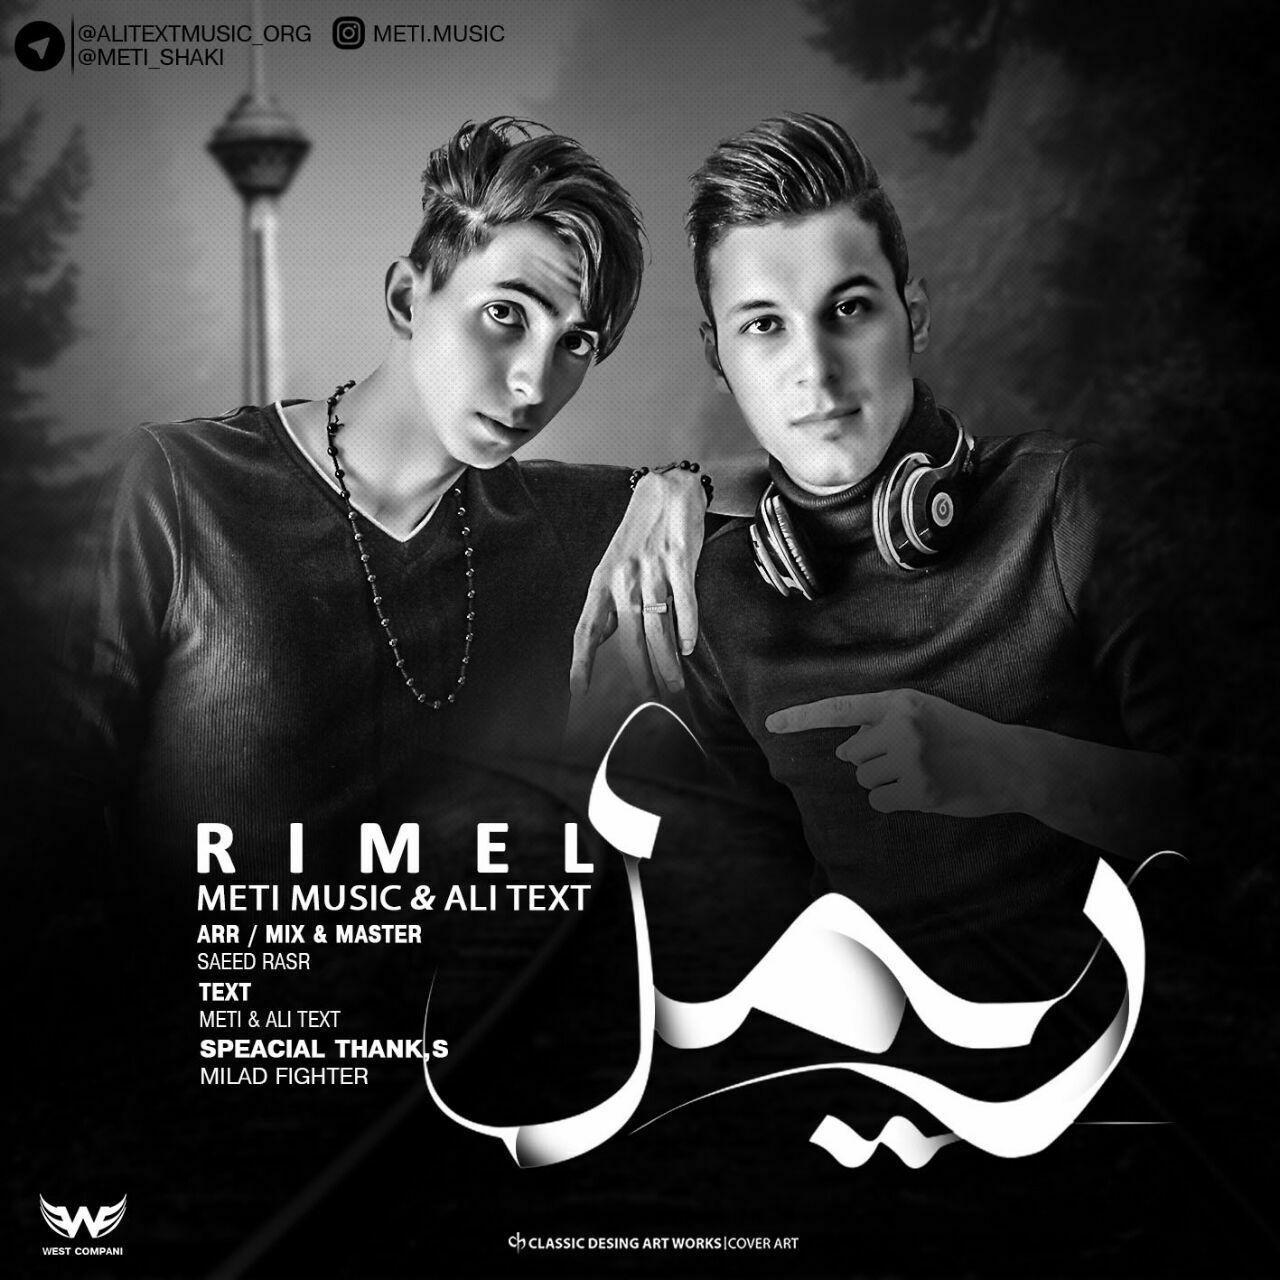 http://s9.picofile.com/file/8305254018/11Meti_Music_Ali_Text_Rimel.jpg